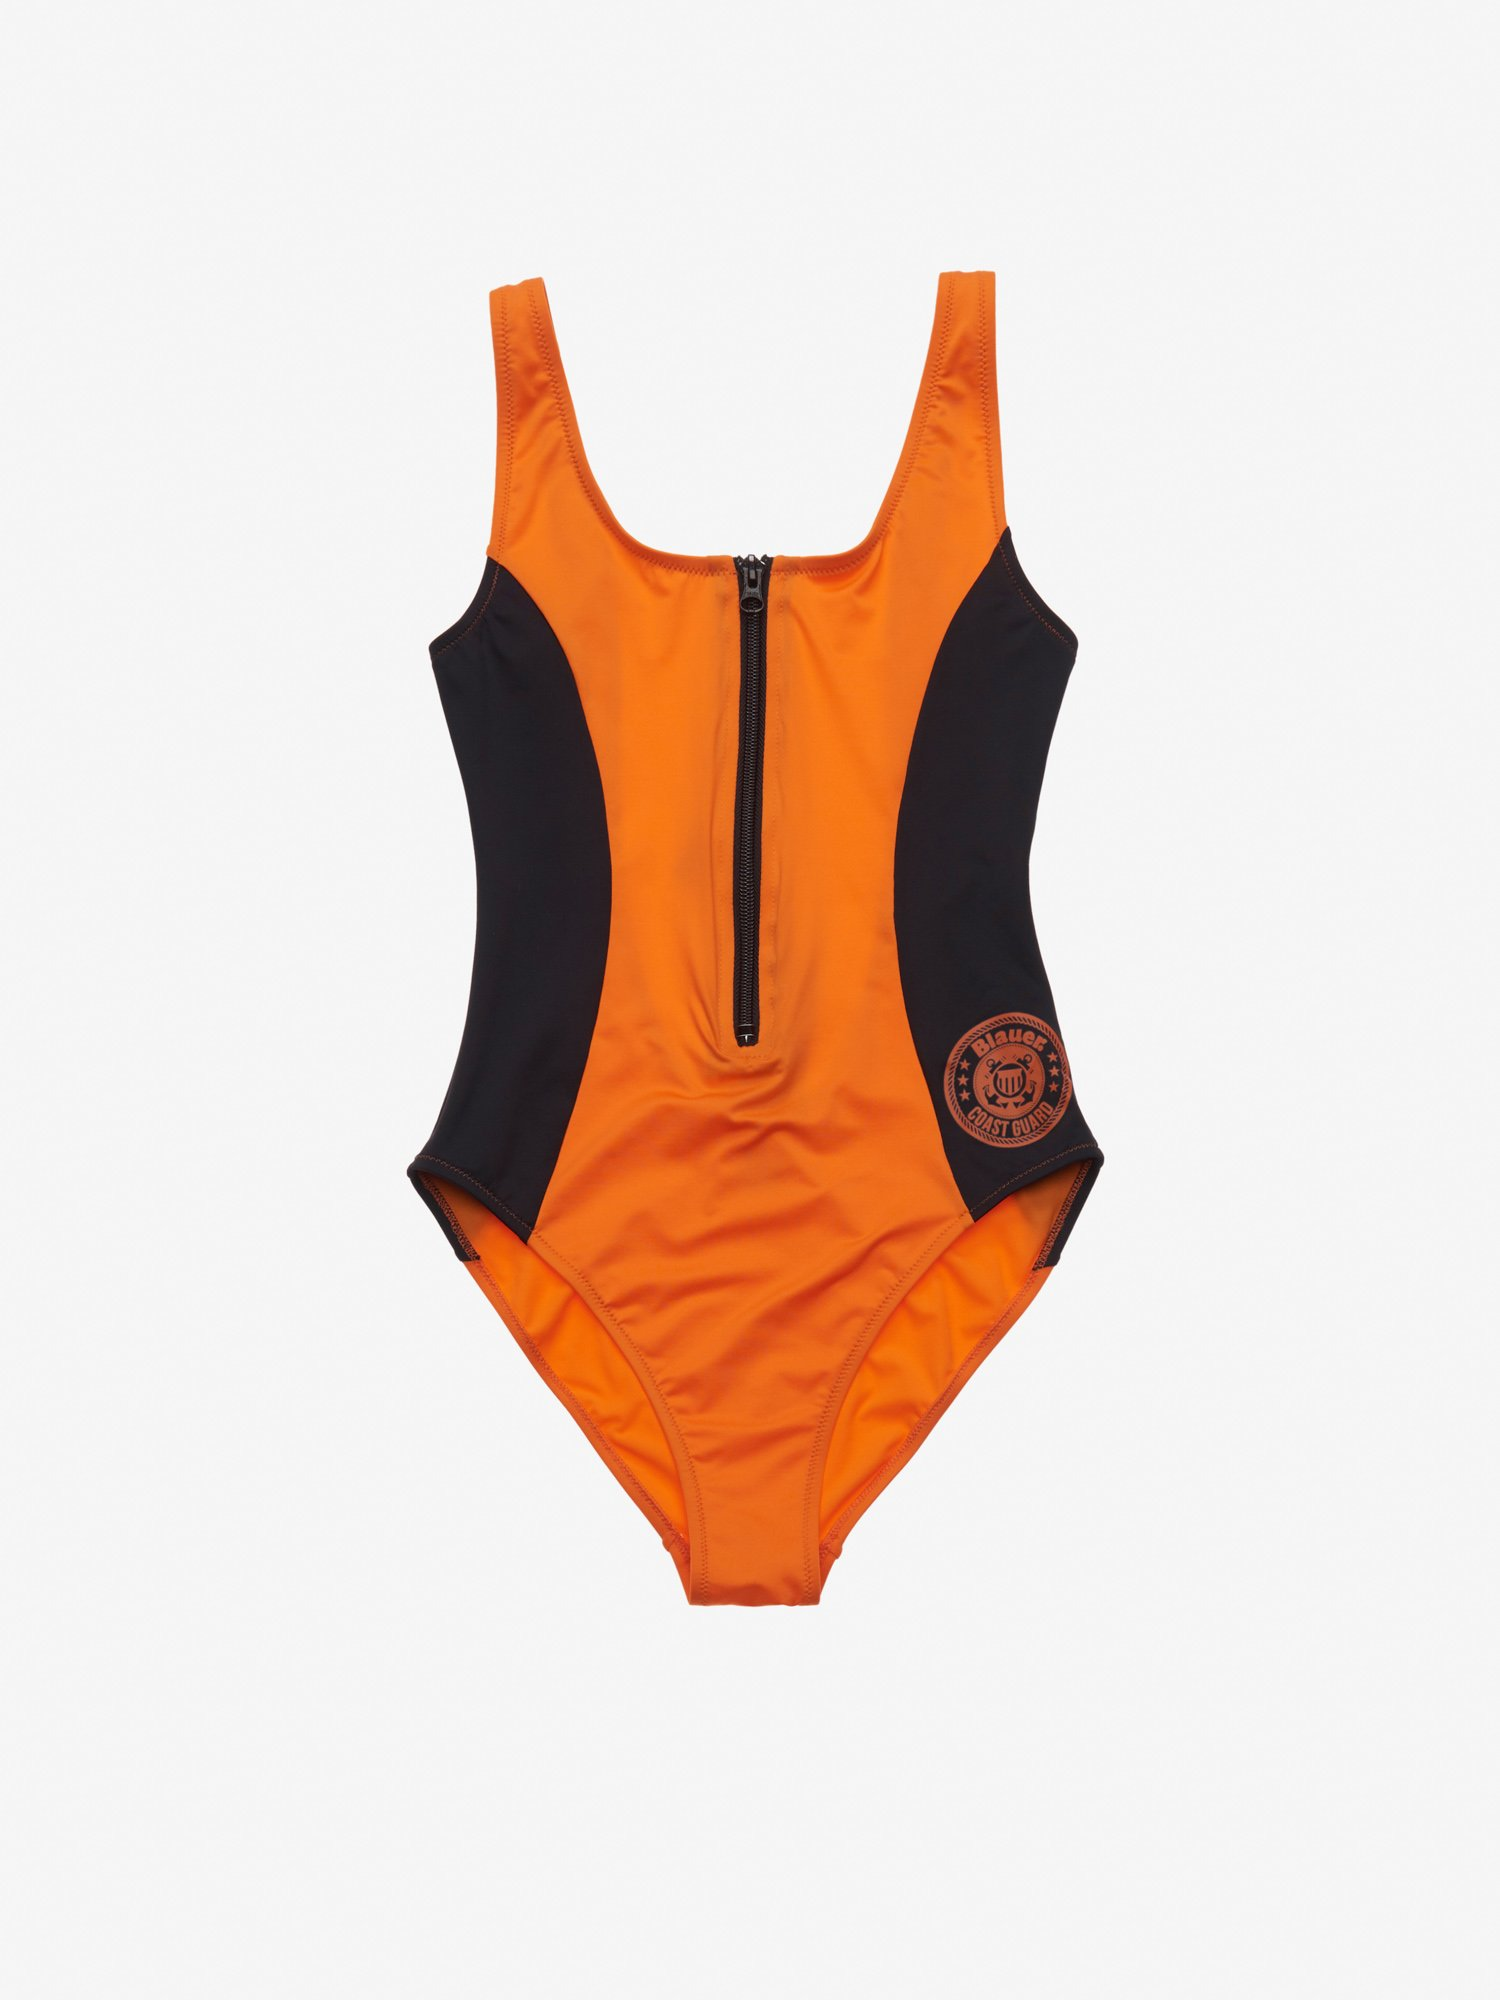 ONE-PIECE BAYWATCH STYLE SWIMSUIT - Blauer